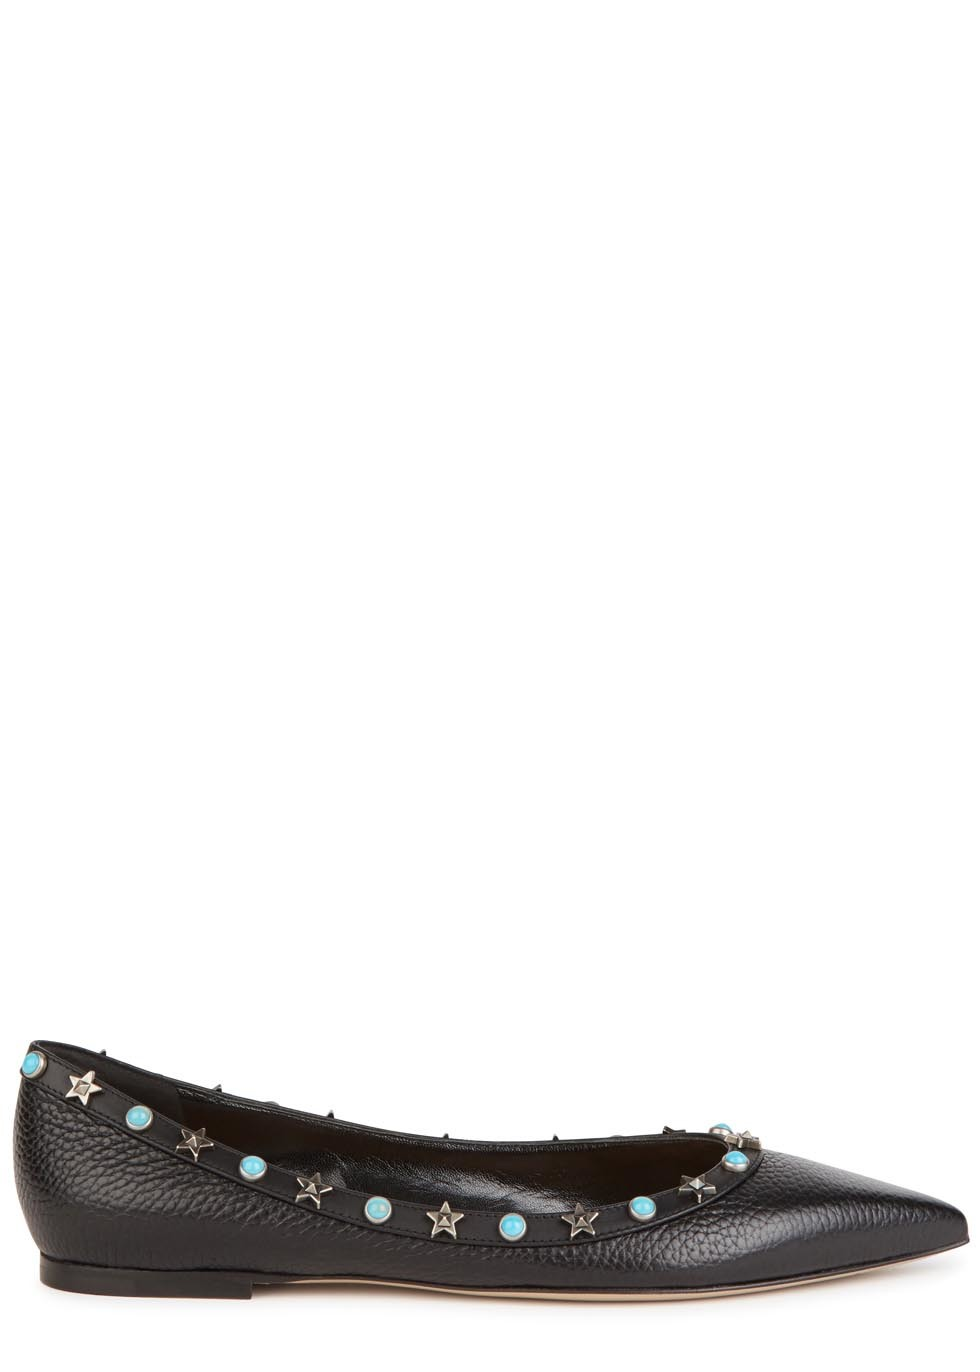 Rockstud Star Black Leather Flats - predominant colour: black; occasions: casual, creative work; material: leather; heel height: flat; embellishment: studs; toe: pointed toe; style: ballerinas / pumps; finish: plain; pattern: plain; season: s/s 2016; wardrobe: basic